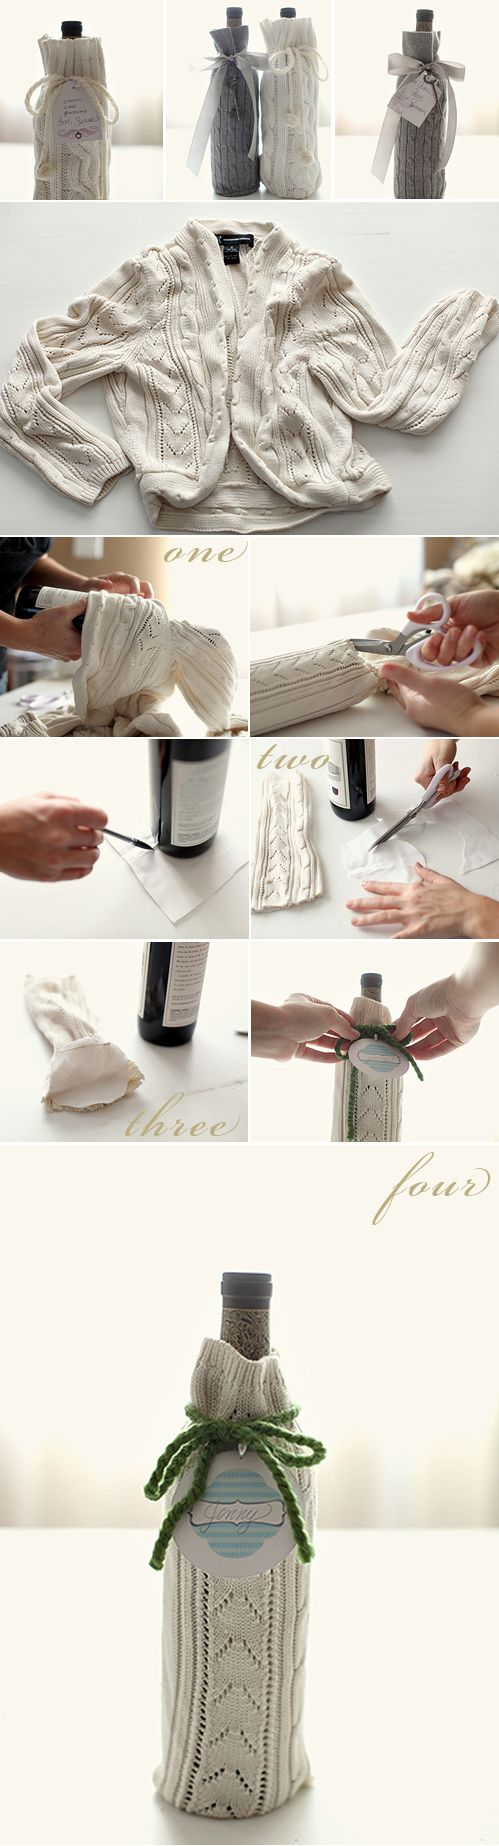 Wine Bottle Cozie | Don't Throw Your Old Sweaters Out! Try These 18 DIY Projects With Them Instead